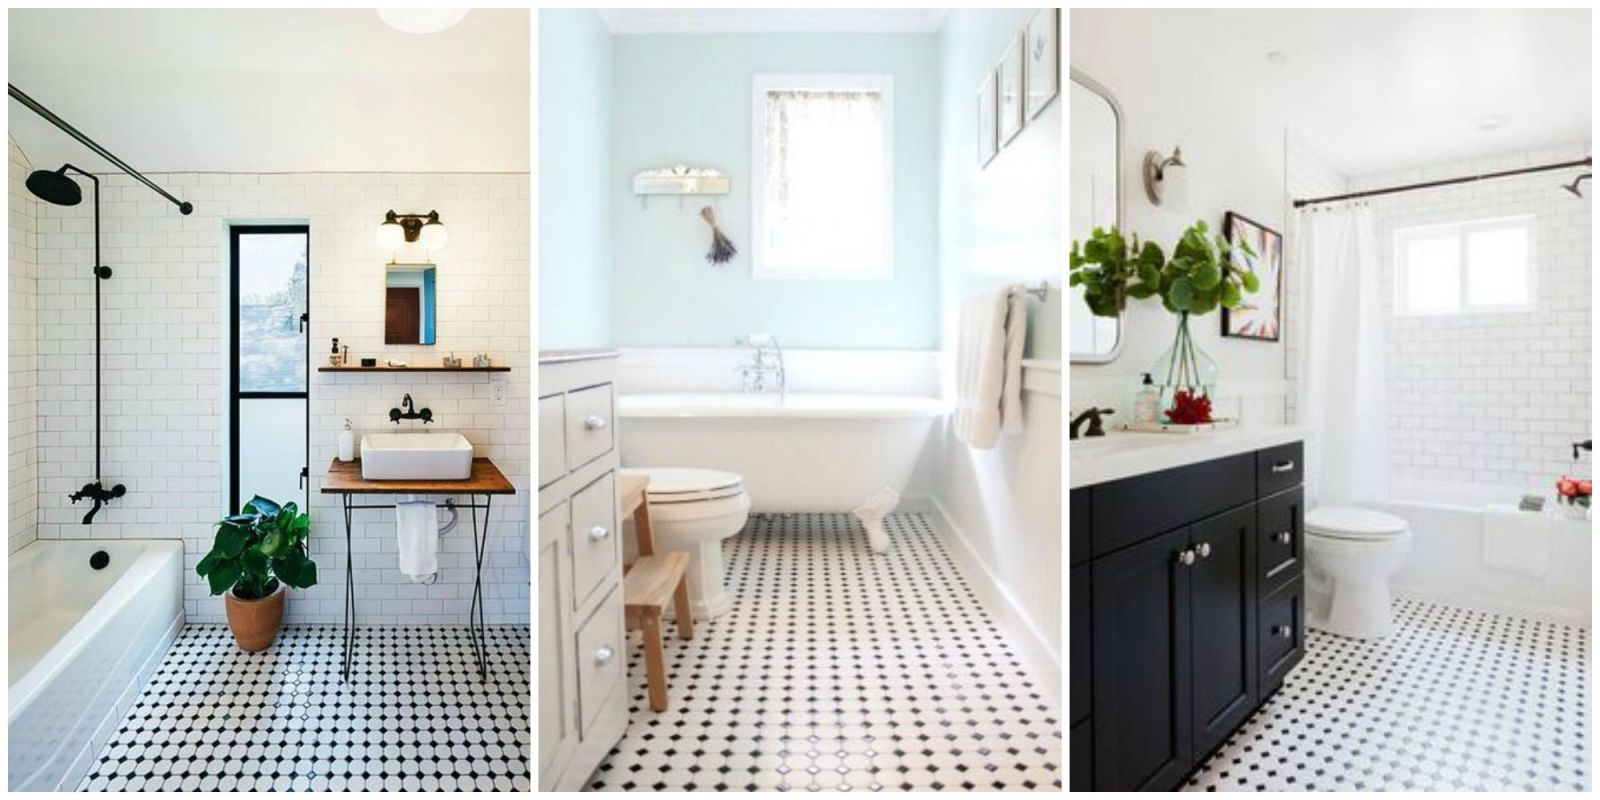 Gentil When It Comes To Classic Design Ideas, Black And White Tile Is Kingu2014while  It Can Fade In Popularity, It Never Really Goes Out Of Style.